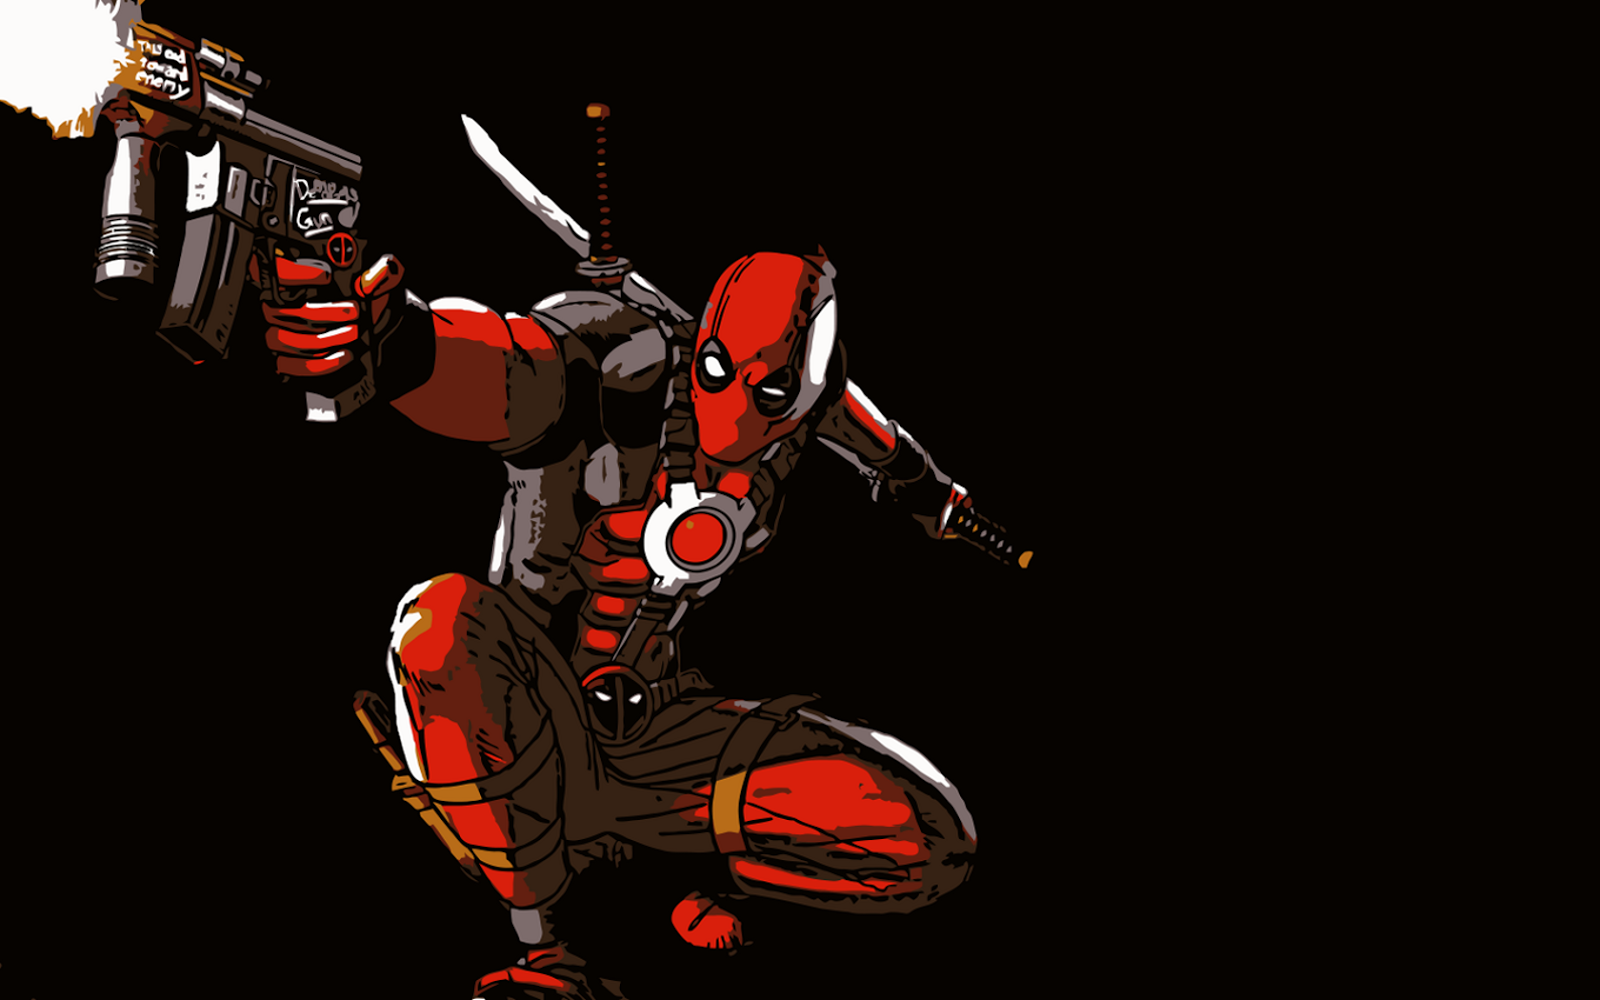 Top Cool Deadpool Wallpaper Images for Pinterest 1600x1000